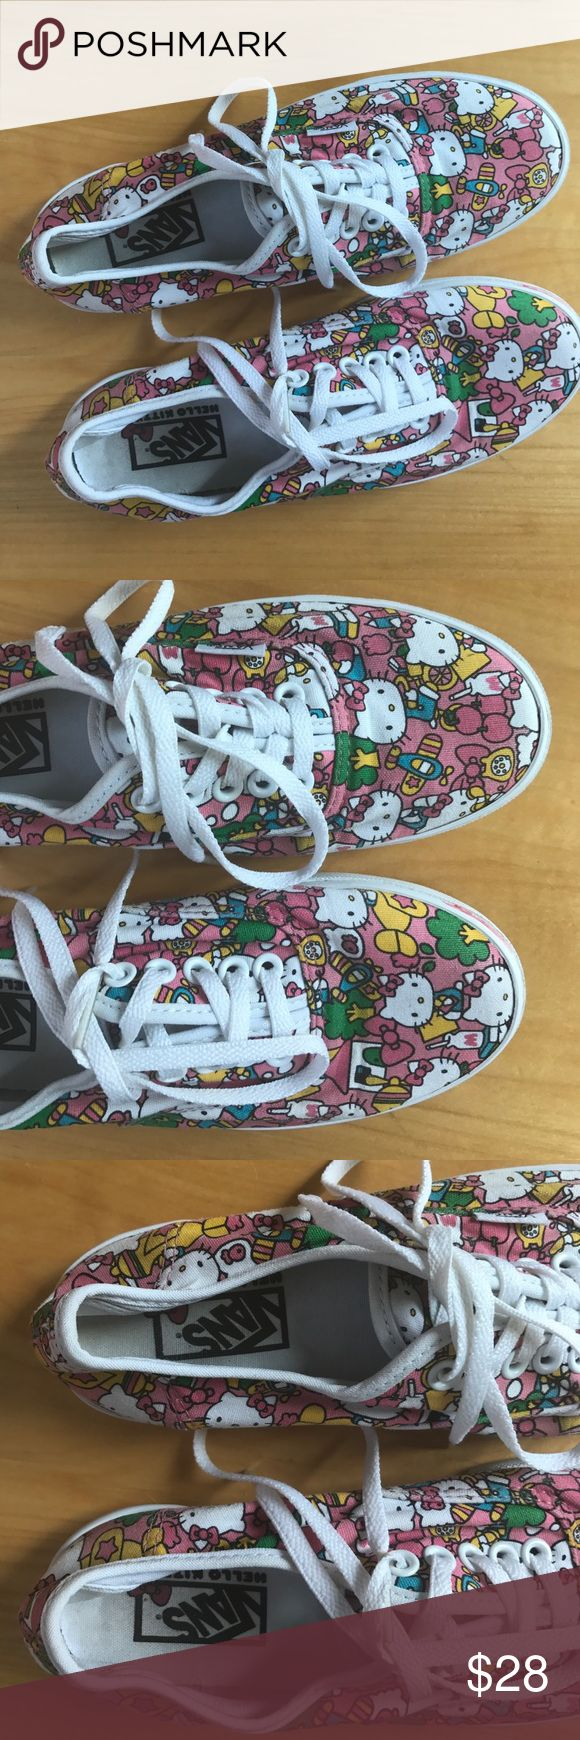 Vans Hello Kitty Lace Up Sneakers Excellent used condition, clean shoes. Condition shown in photos. Size 6 for women, men's 4.5. Vans Shoes Athletic Shoes